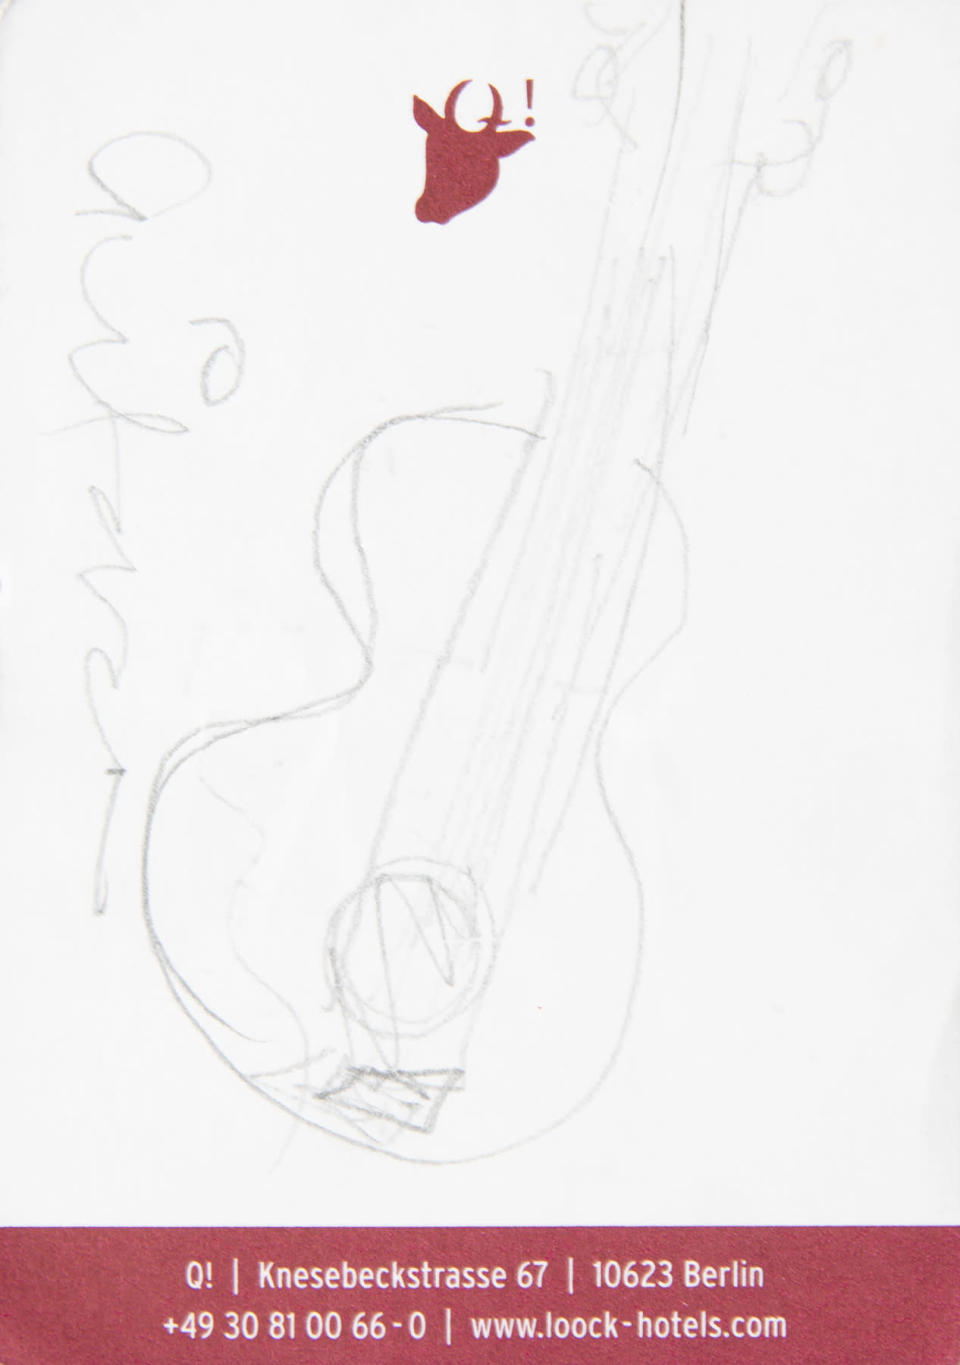 A sketch by Amy Winehouse being sold at auction